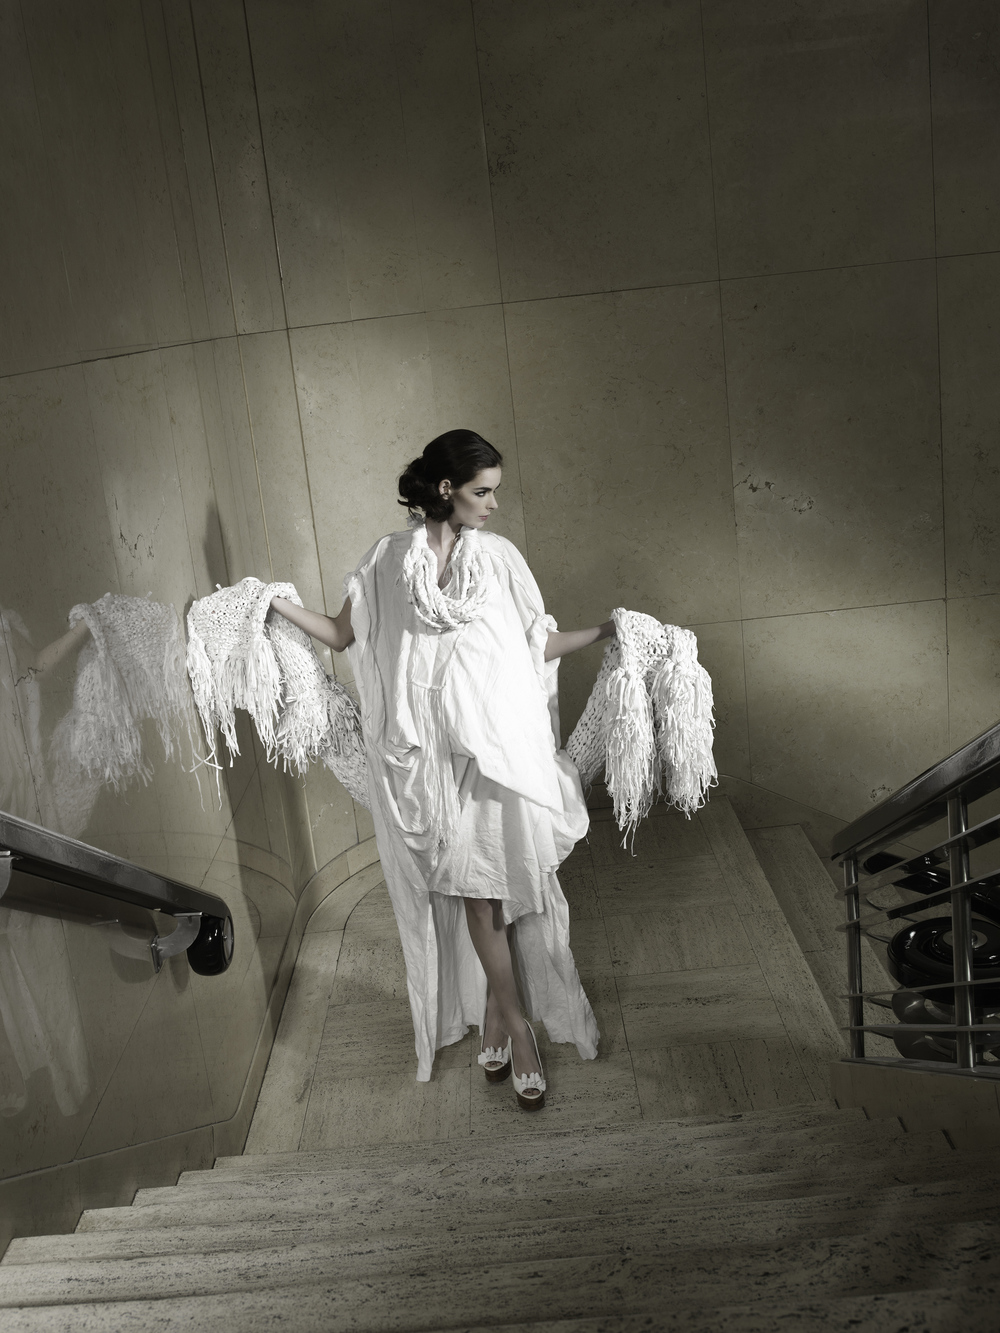 White-Cashmere-Collection-2012-Laura-Siegel-Photographer-Angus-Rowe-MacPherson.jpg